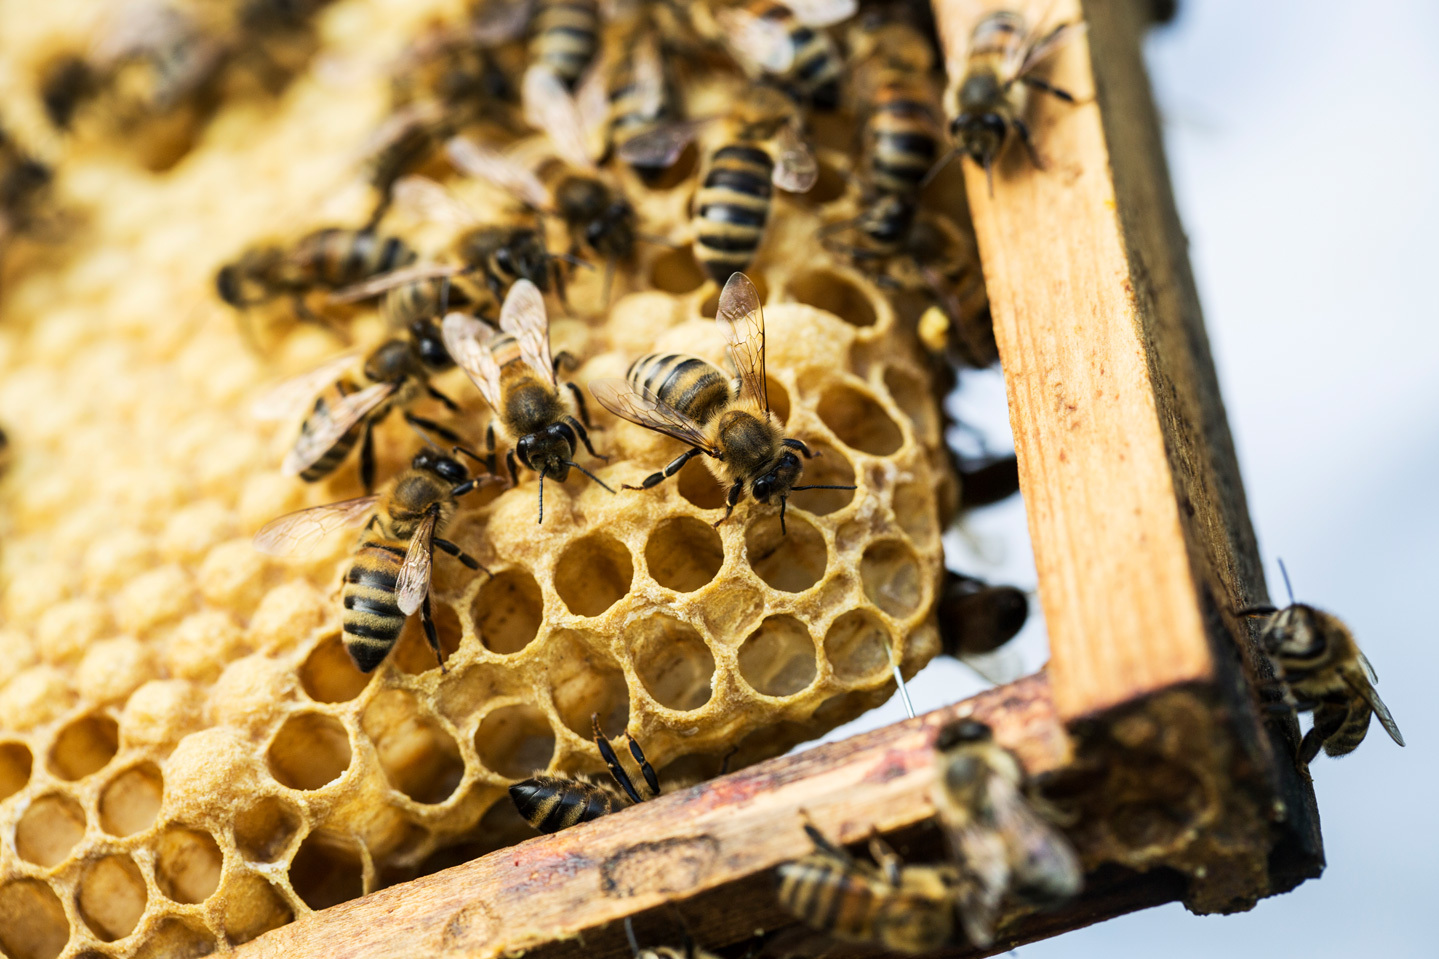 Bees Are Dying Off in Record Numbers: What Can We Do About It?